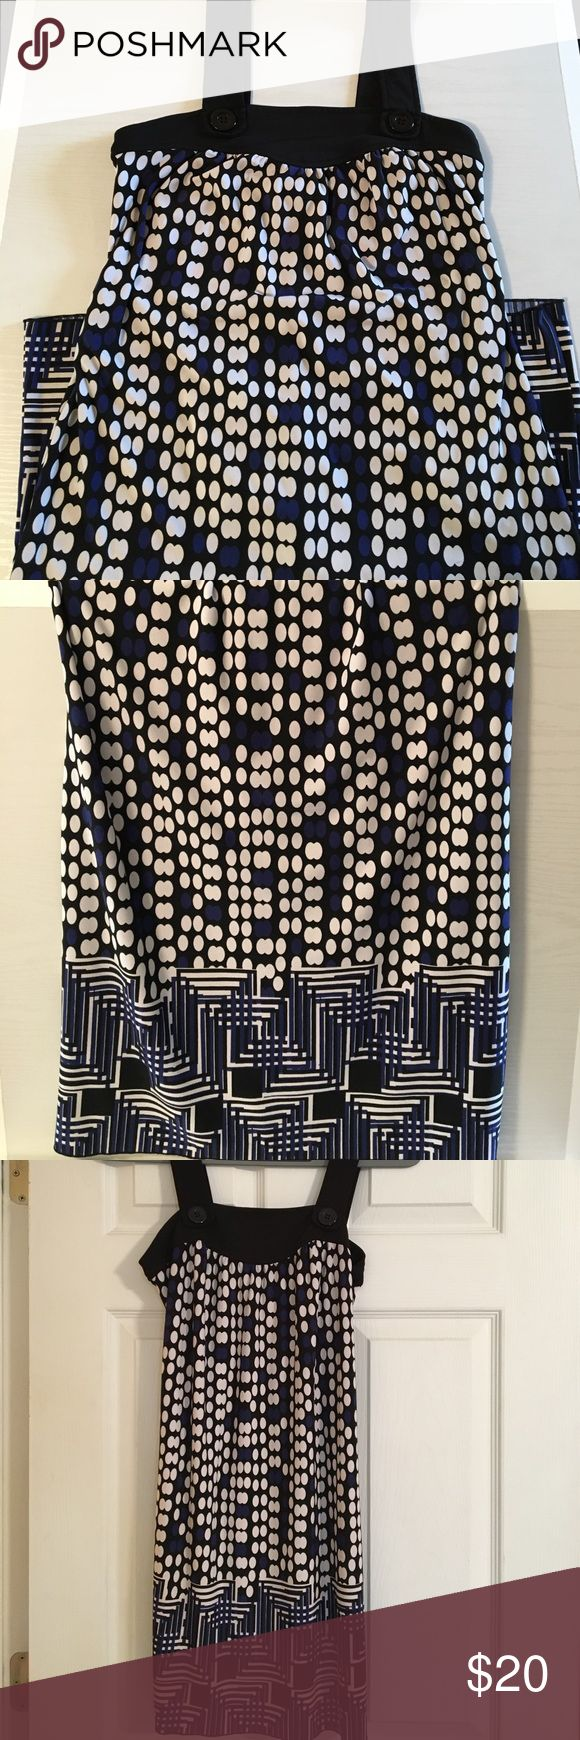 """Dress up and go out, here's a cute dress for that! Blue, white, and black geometrical dress, with black straps, size small """"made in USA"""" My Michelle Dresses"""